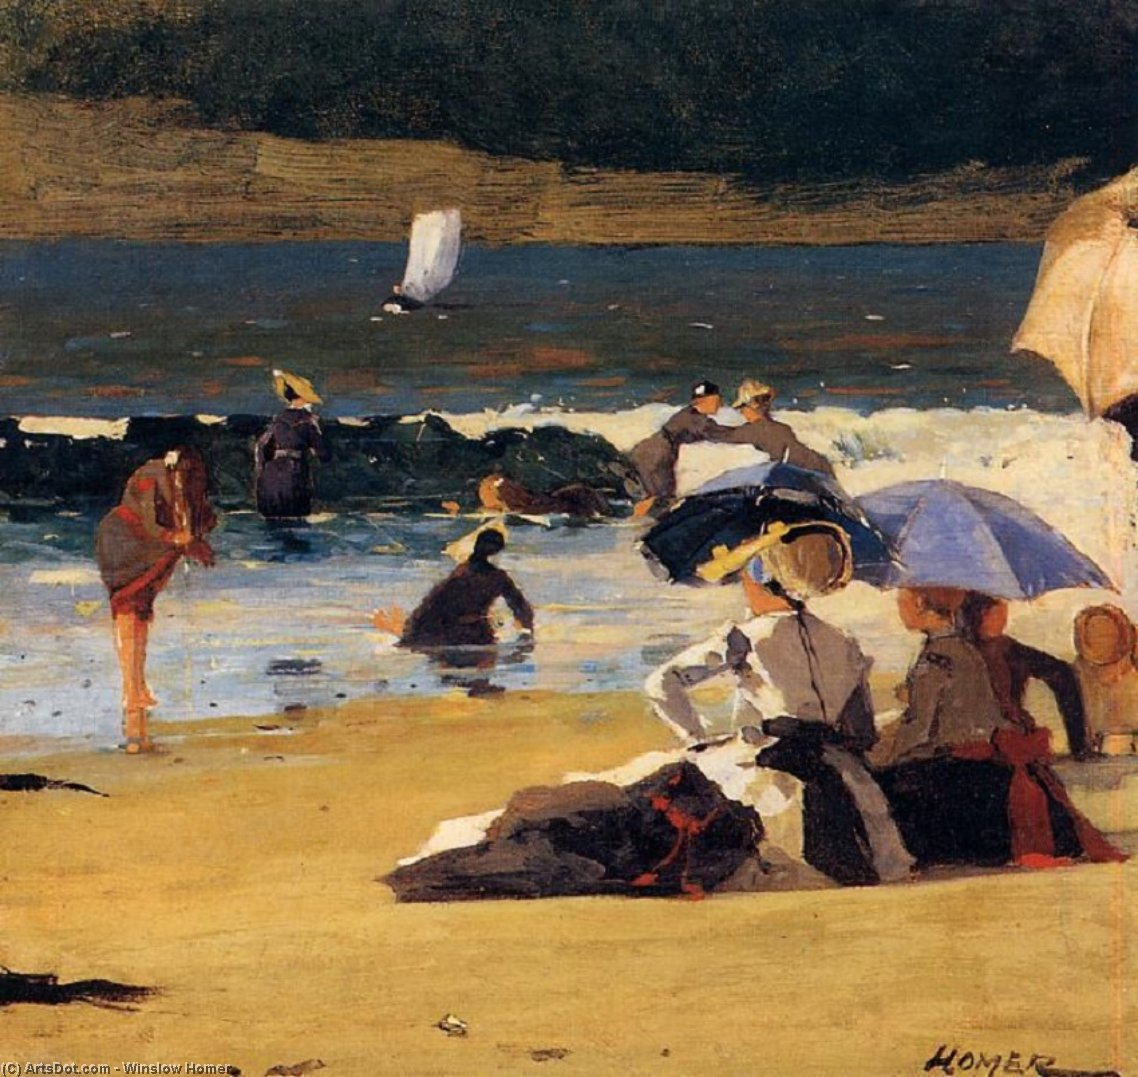 Buy Museum Art Reproductions | By the Shore by Winslow Homer (1836-1910, United States) | ArtsDot.com